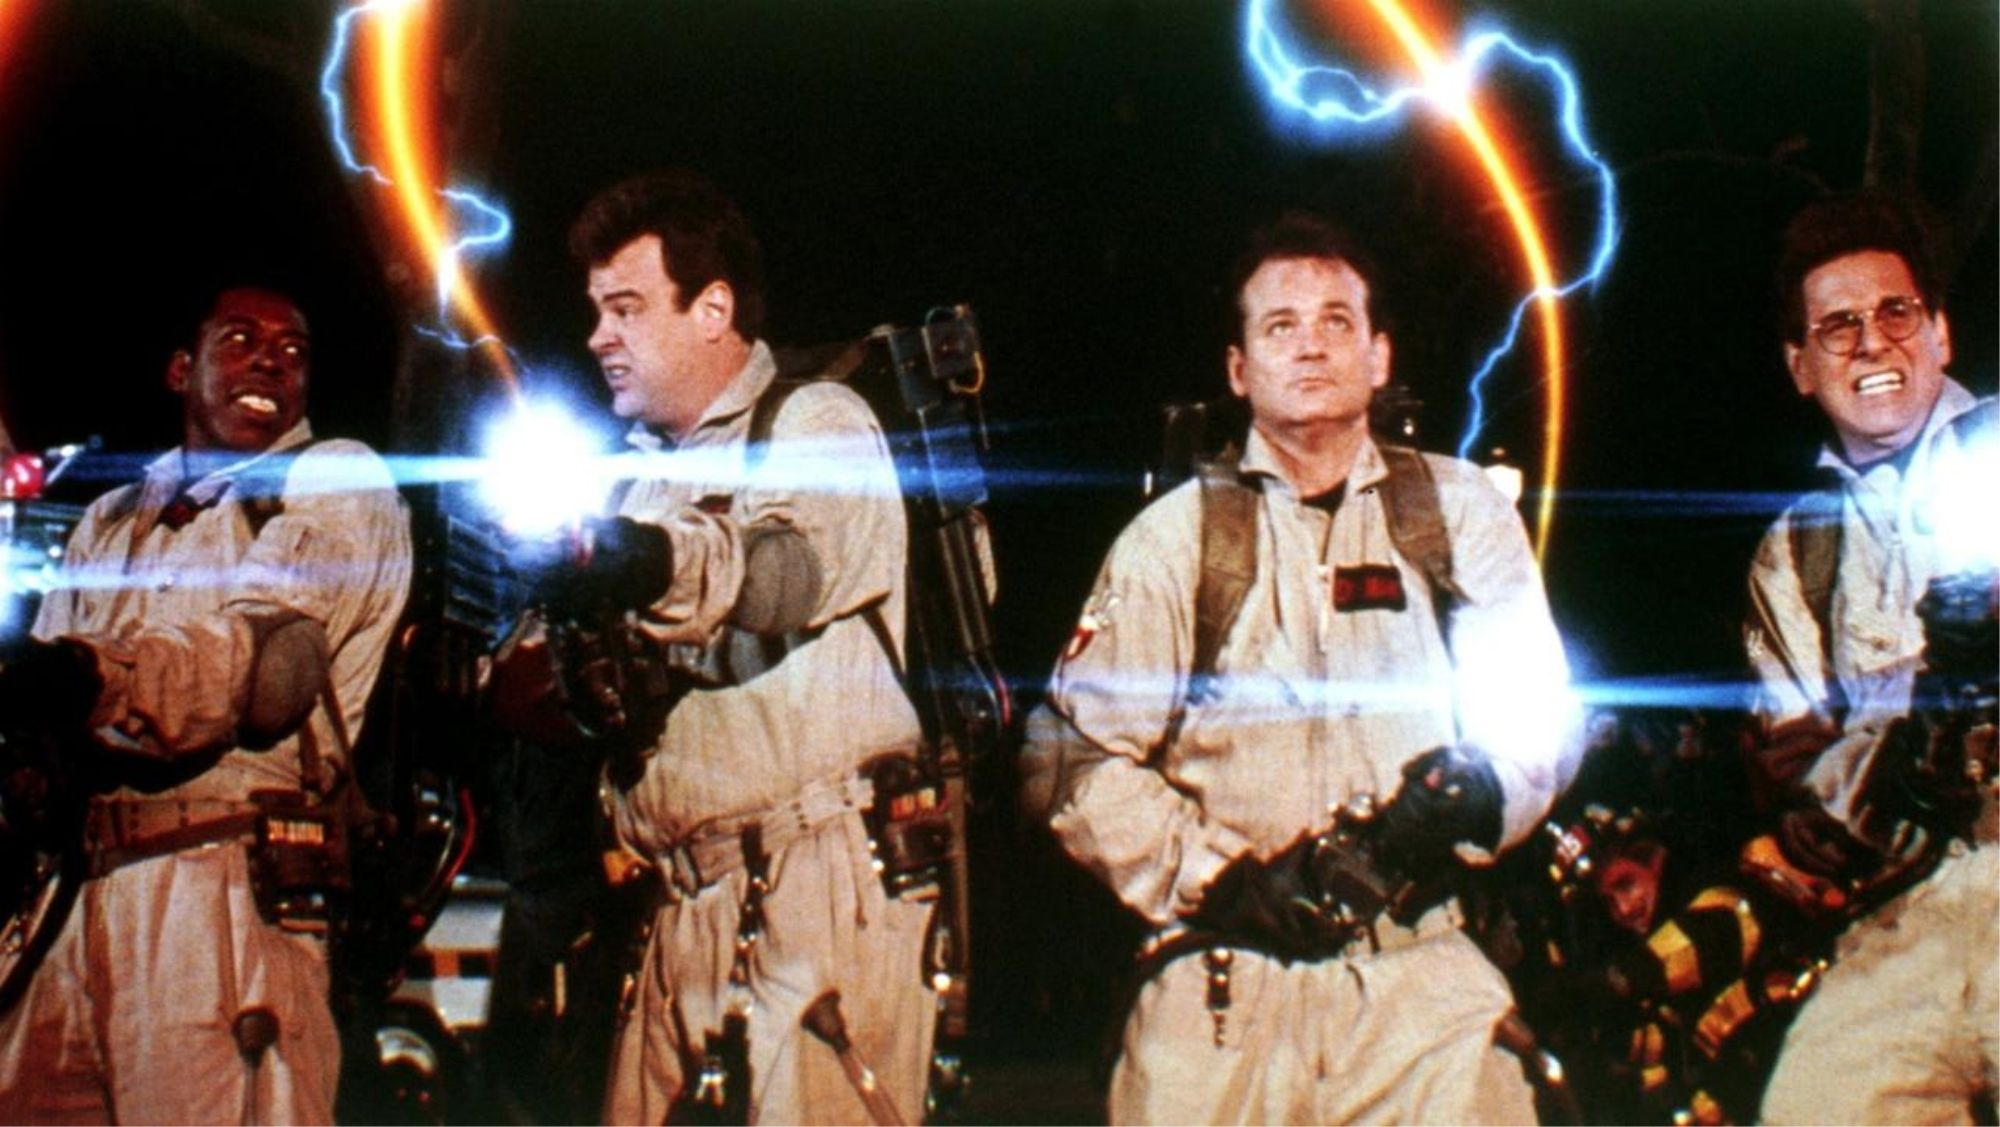 11 Ghostbusters Stars: Where Are They Now?